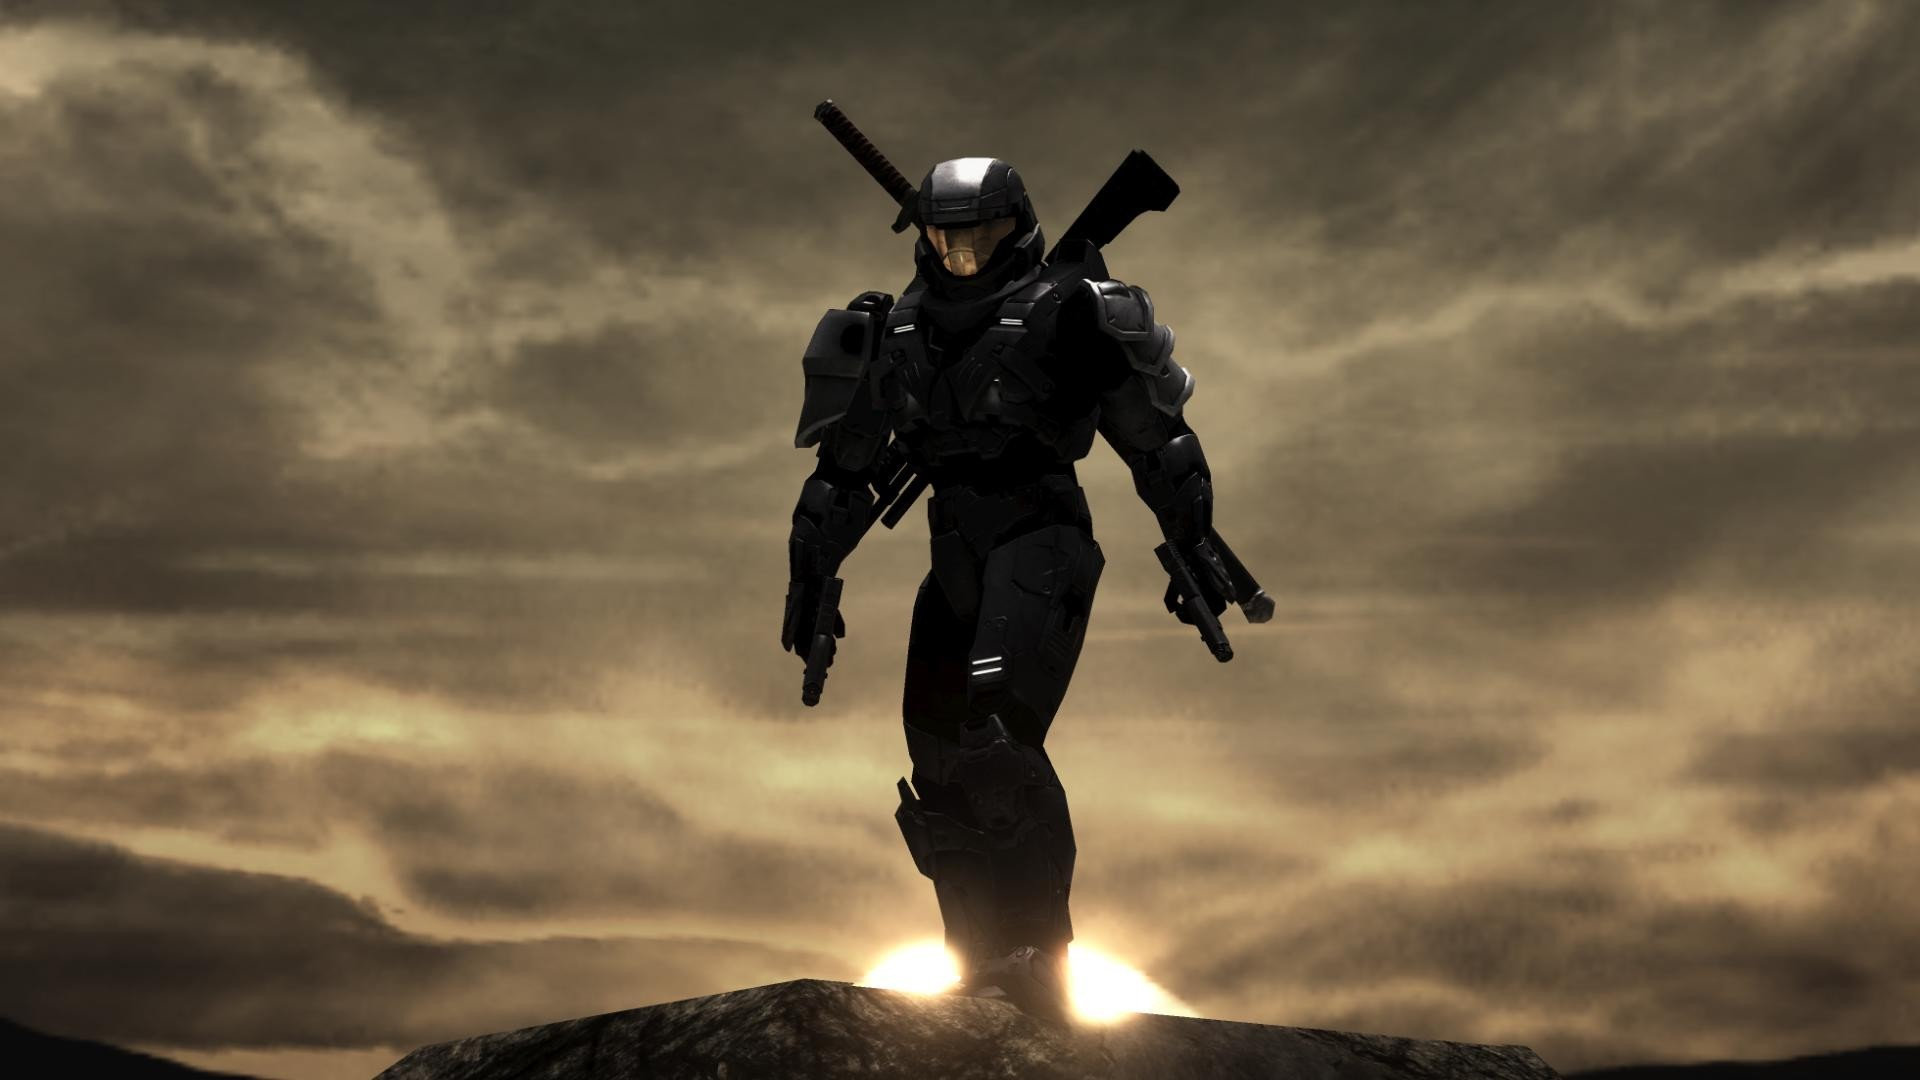 hd wallpaper games halo wallpapers com Best Wallpapers for PCs 1920x1080